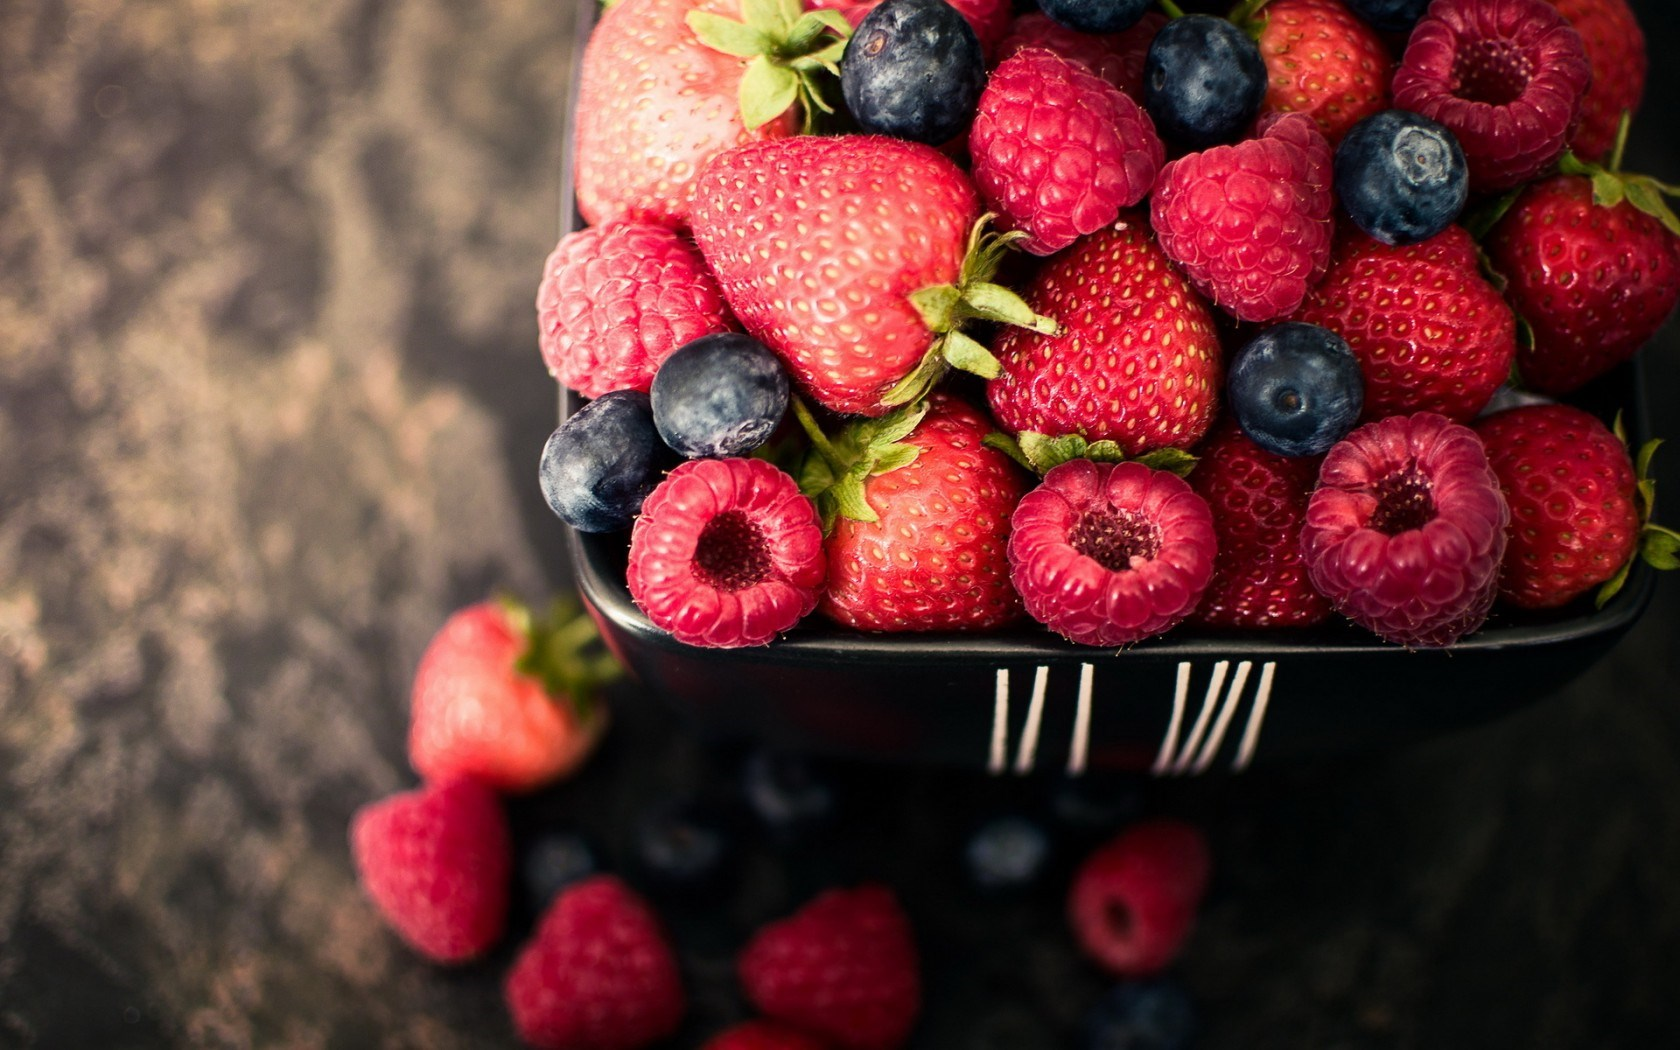 berries-summer-widescreen-high-definition-desktop-wallpaper-background-picture-free